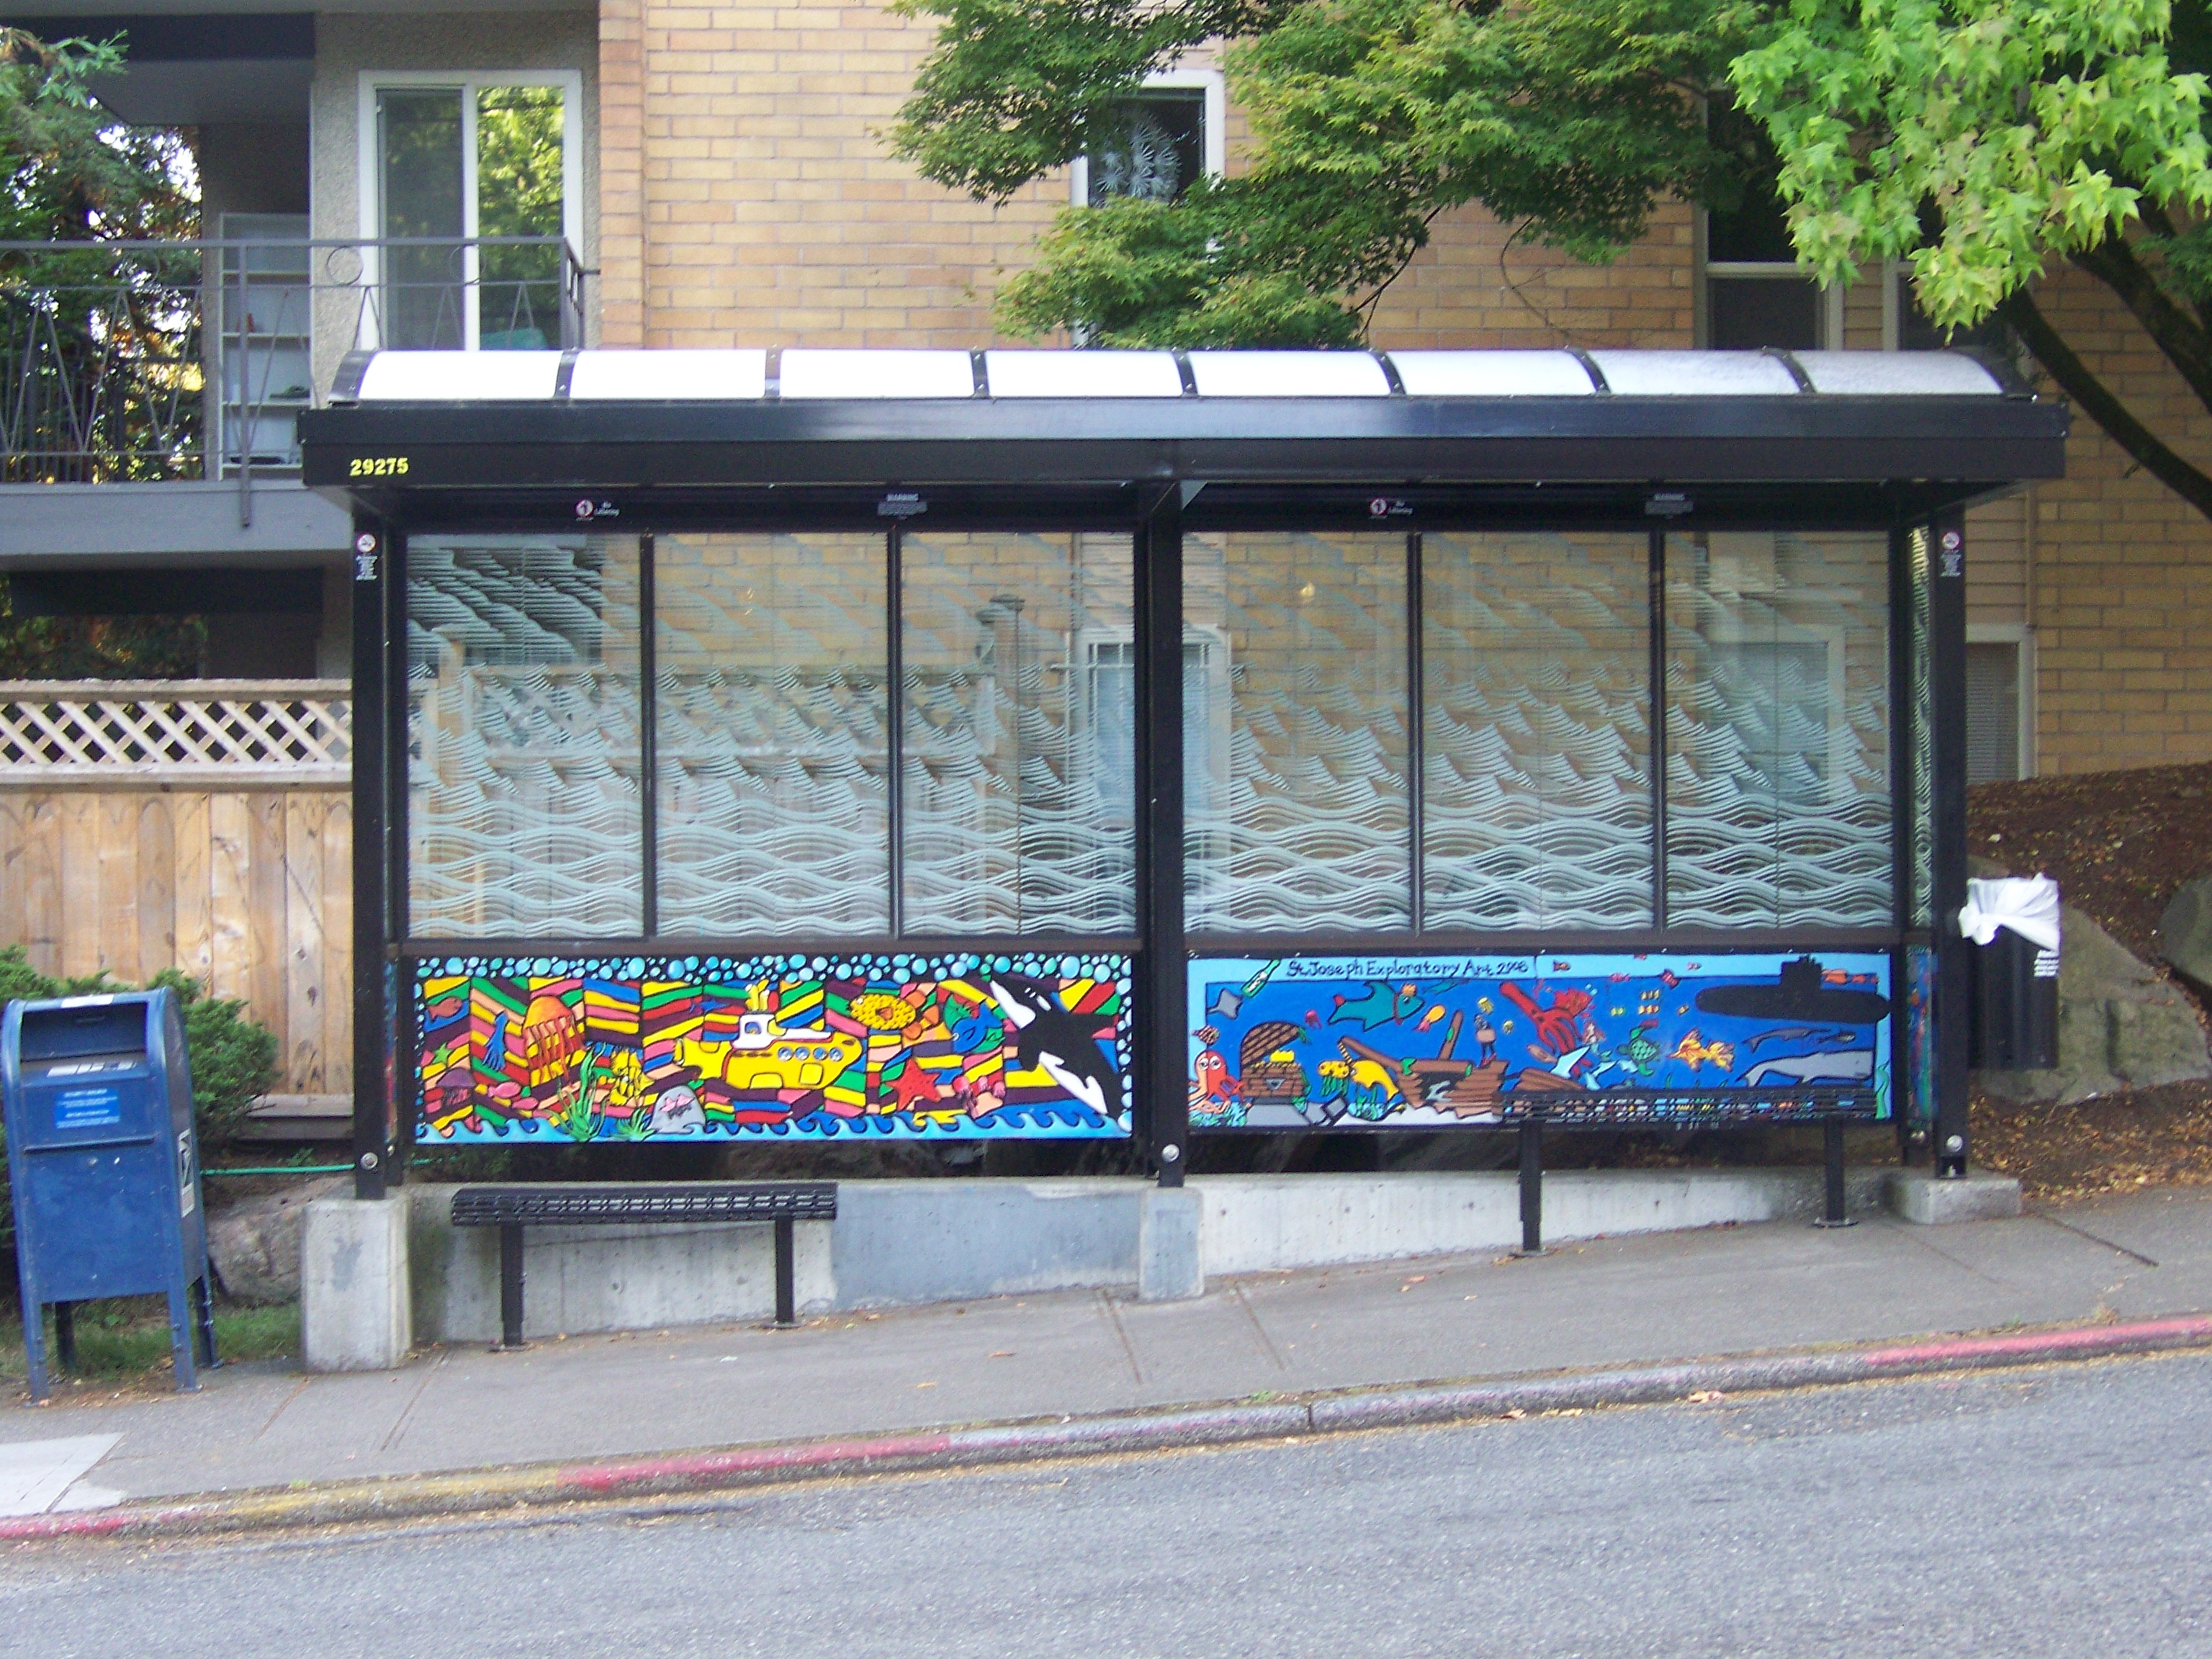 Capitol Hill, Seattle bus shelter with local art, King County Metro transit